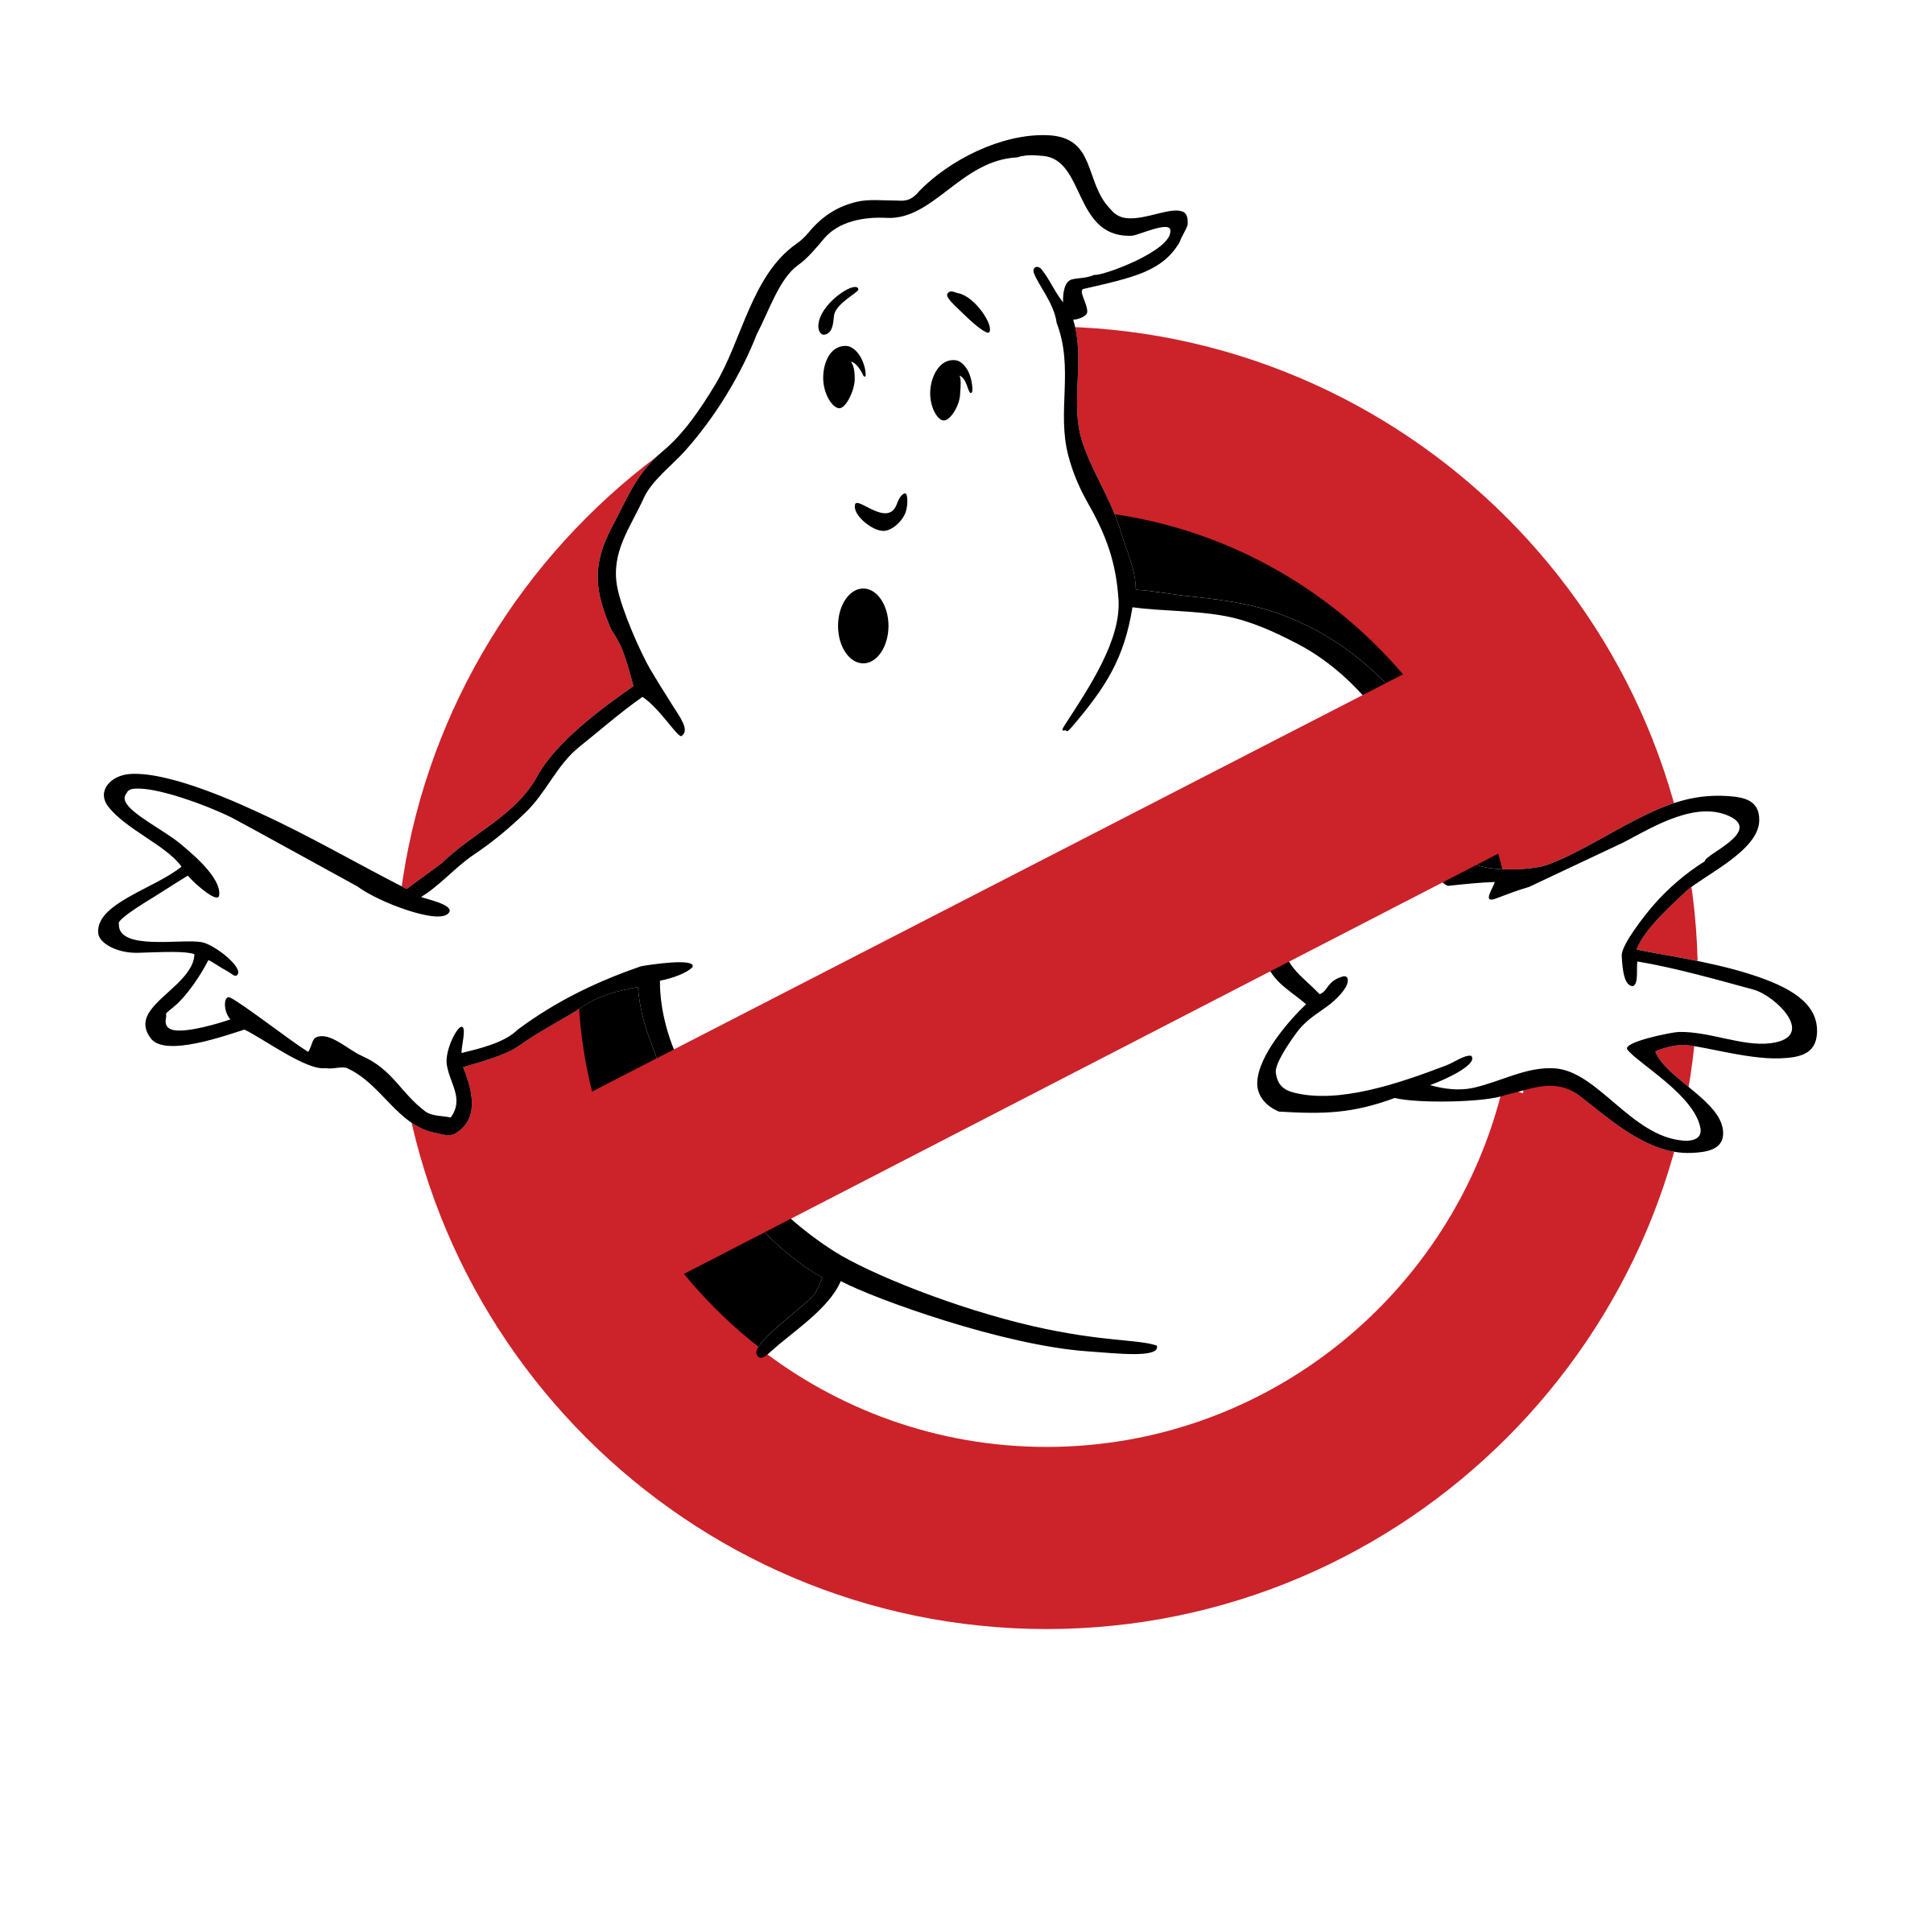 image royalty free stock ghostbusters drawing logo #113167398